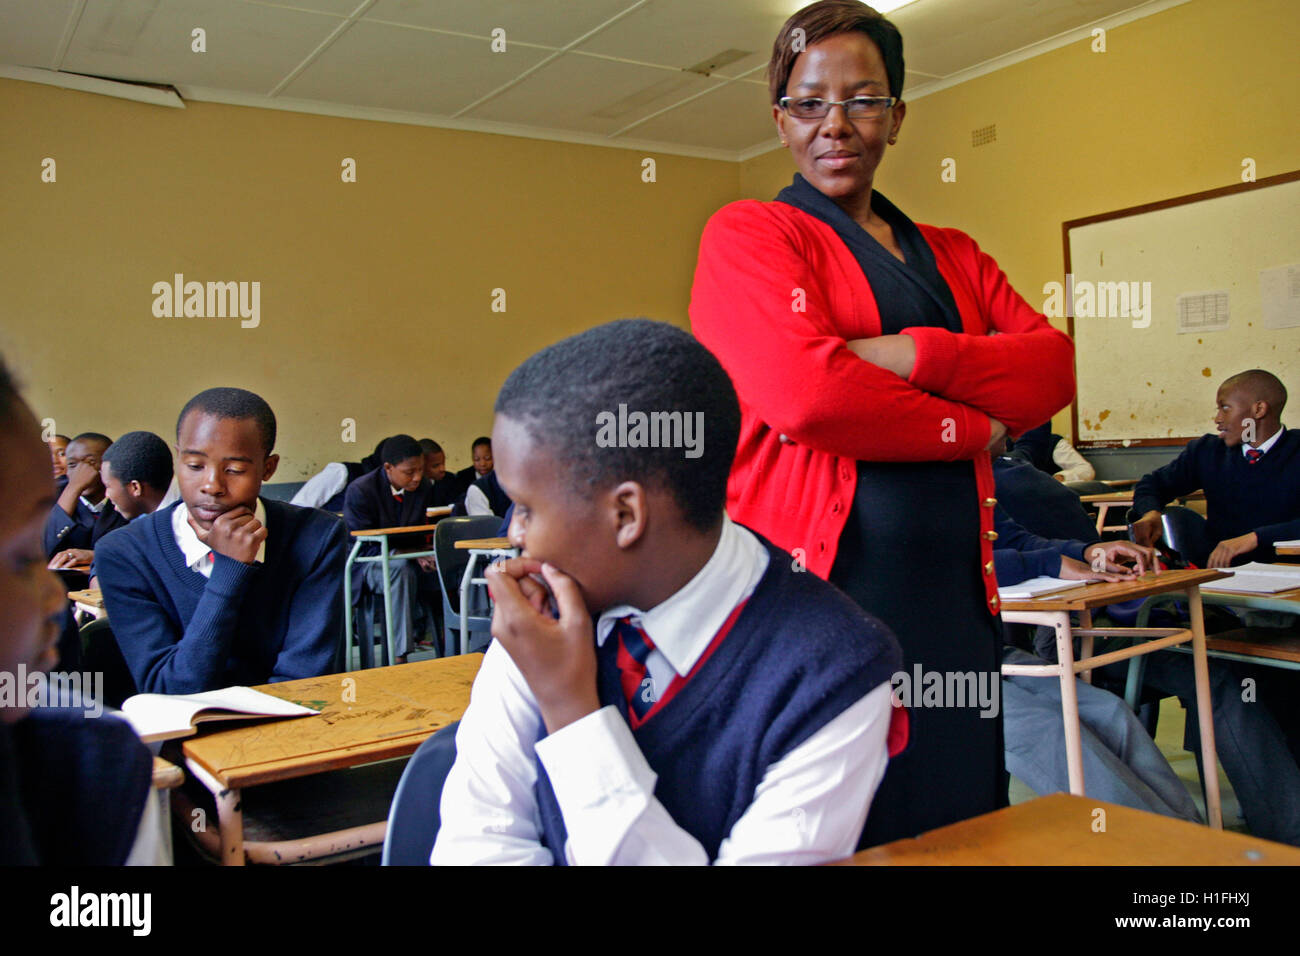 School teacher with school children in classroom, St Mark's School, Mbabane, Hhohho, Kingdom of Swaziland Stock Photo